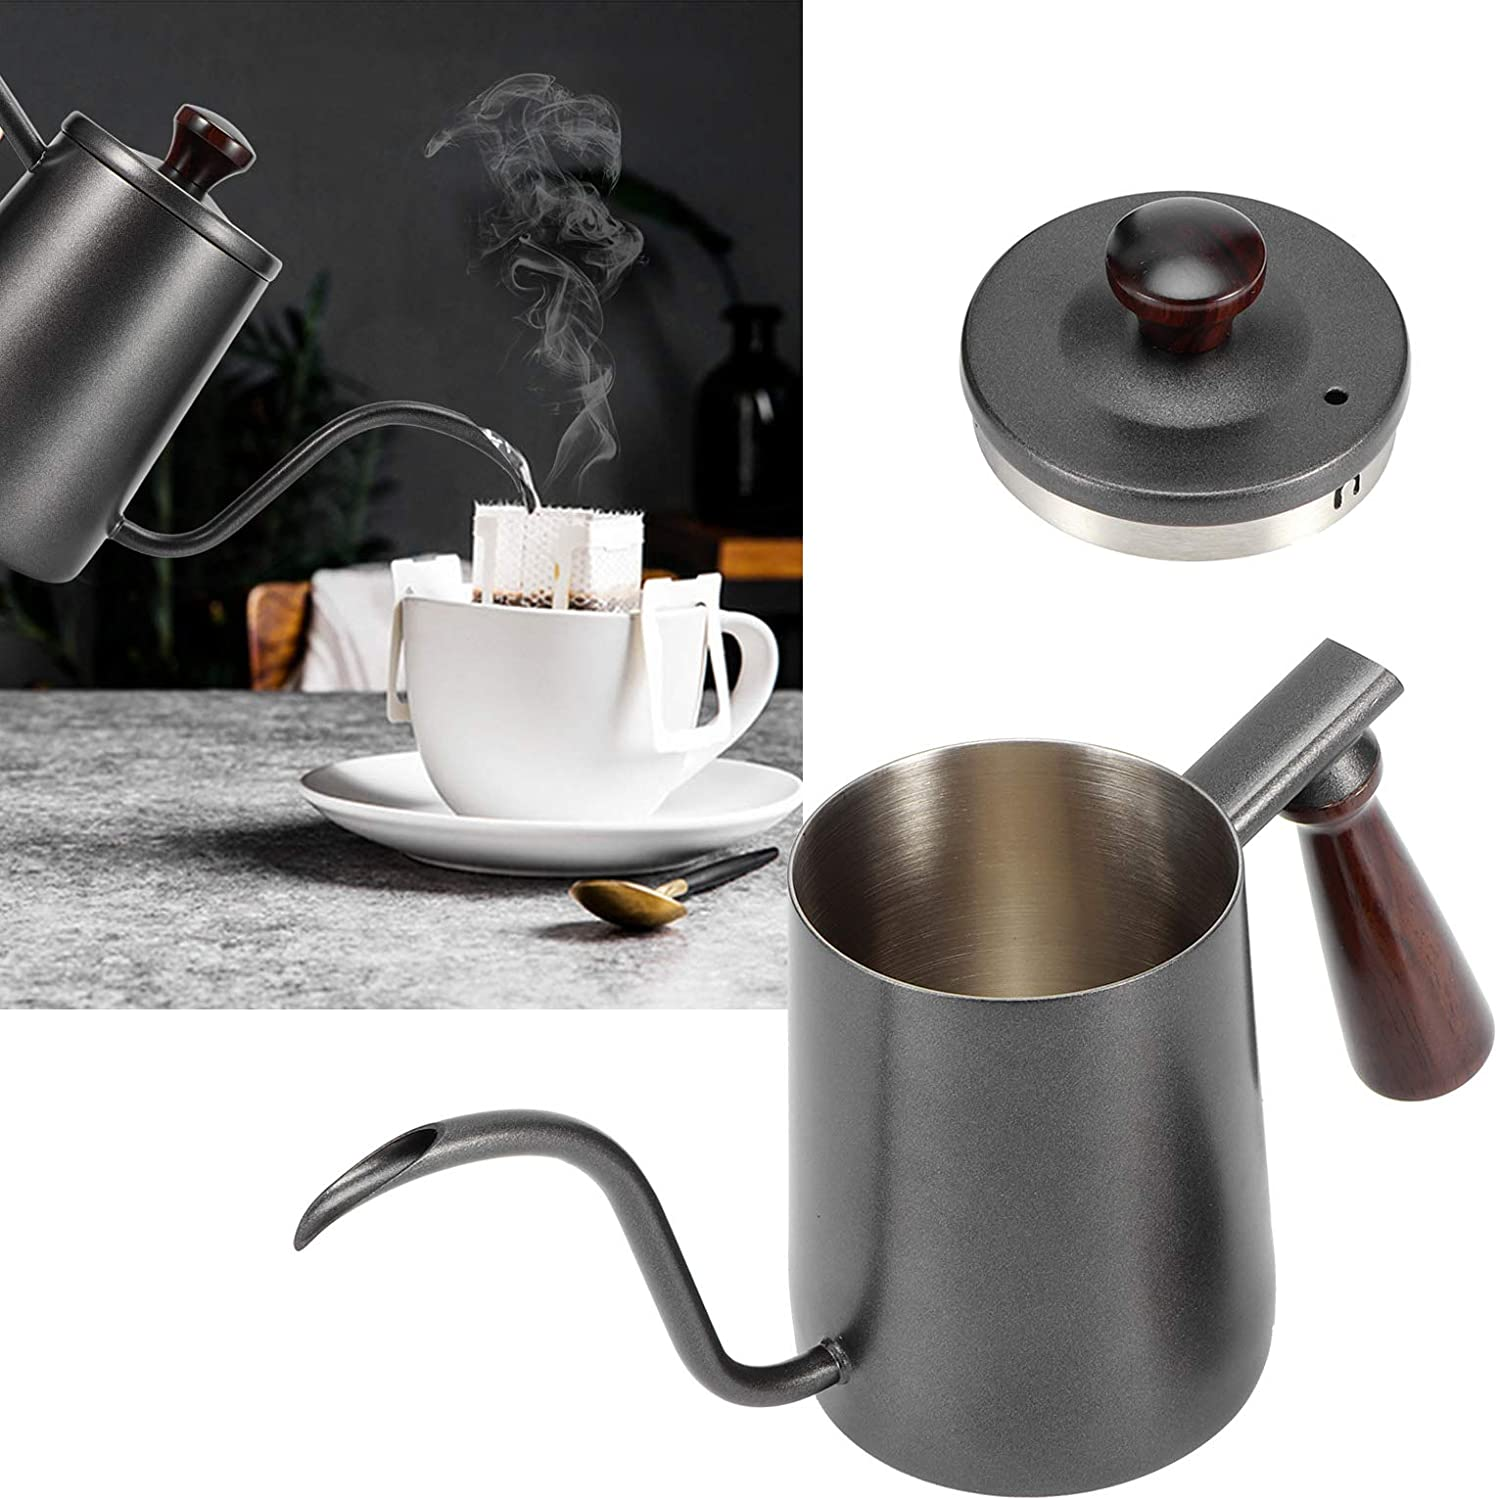 Drip Kettle Coffee Pot Atlanta Mall Use Accesso Over item handling Home